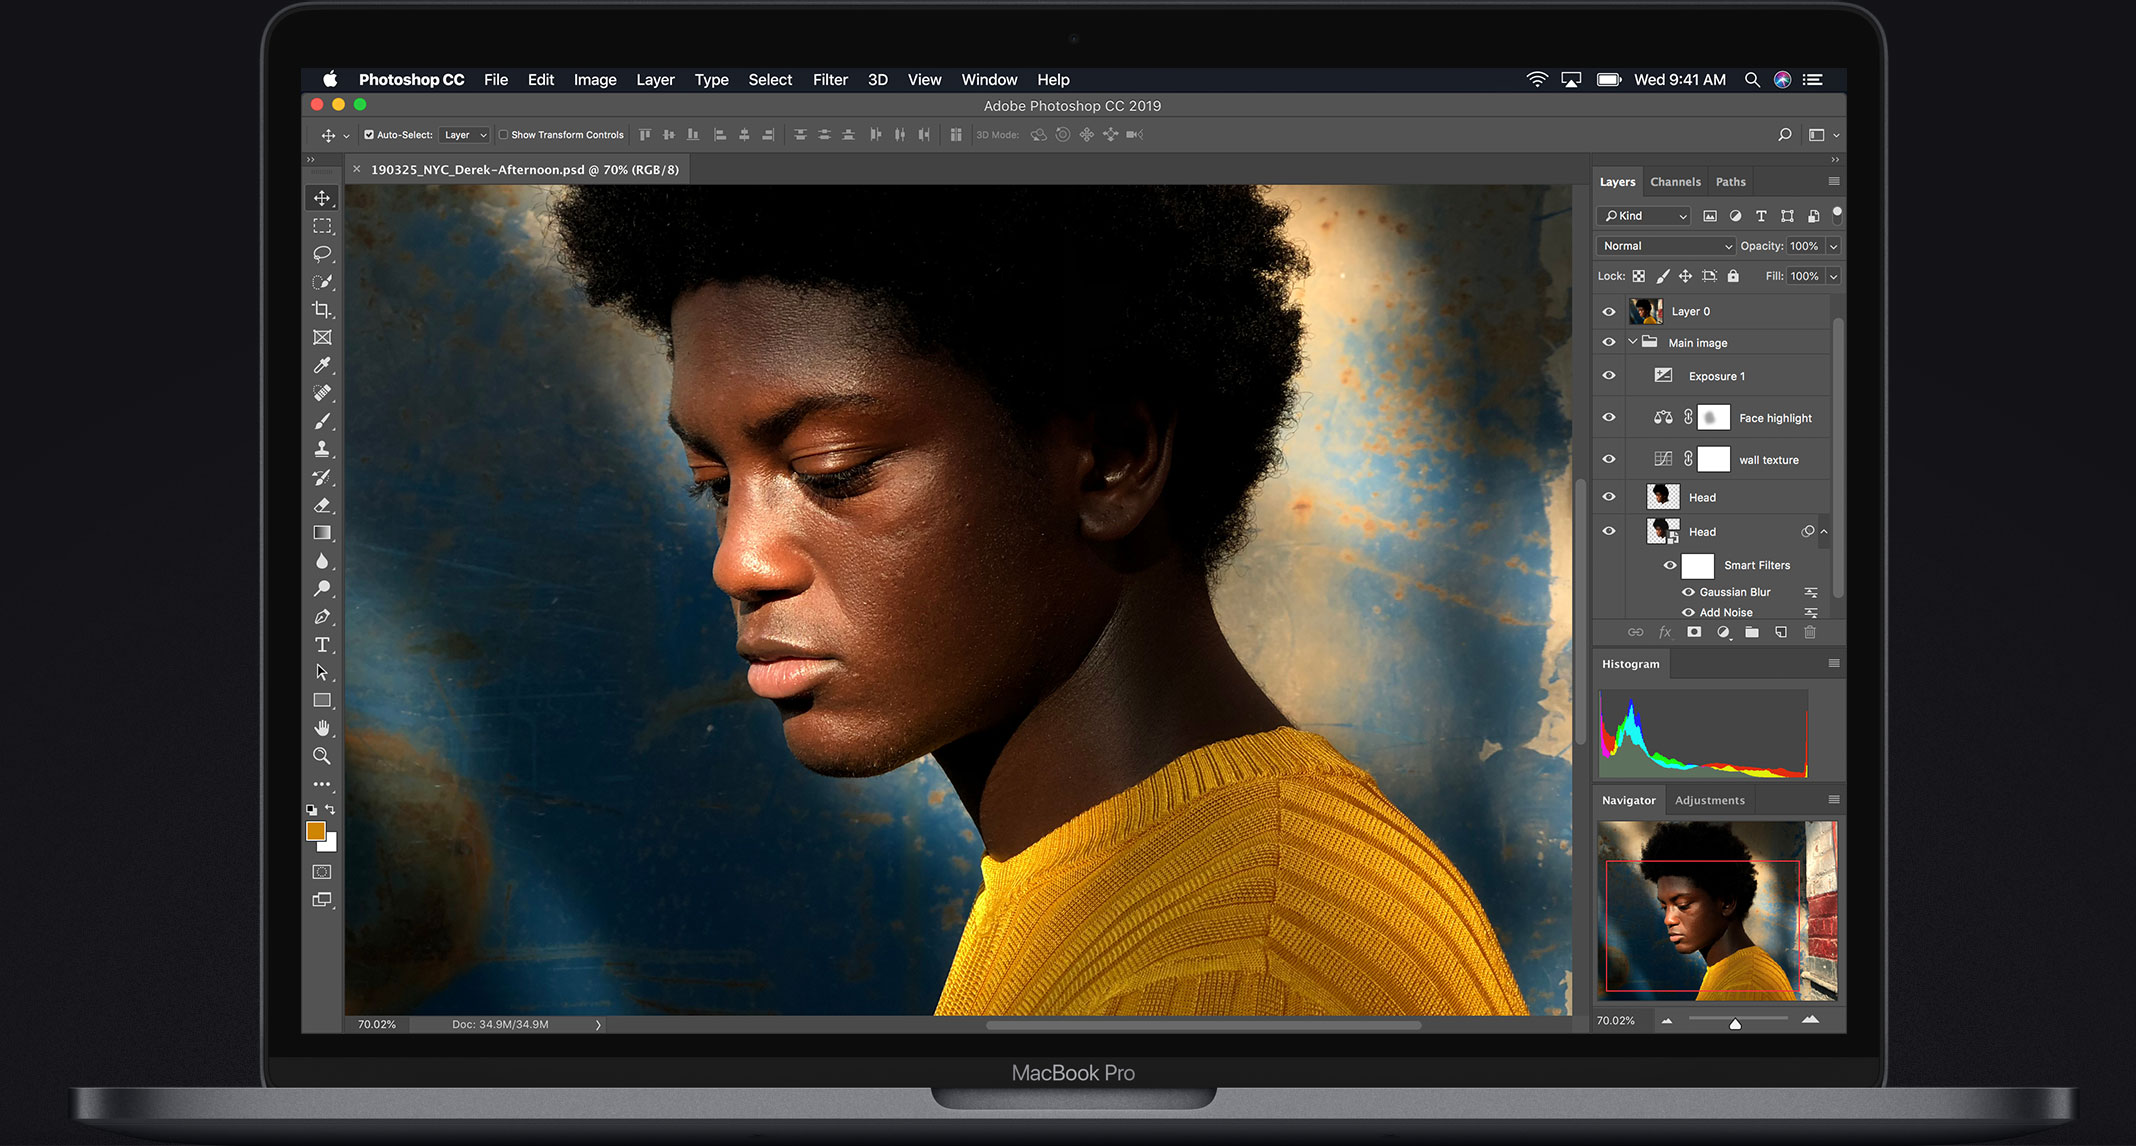 Illustration de l'écran Retina du MacBook Pro